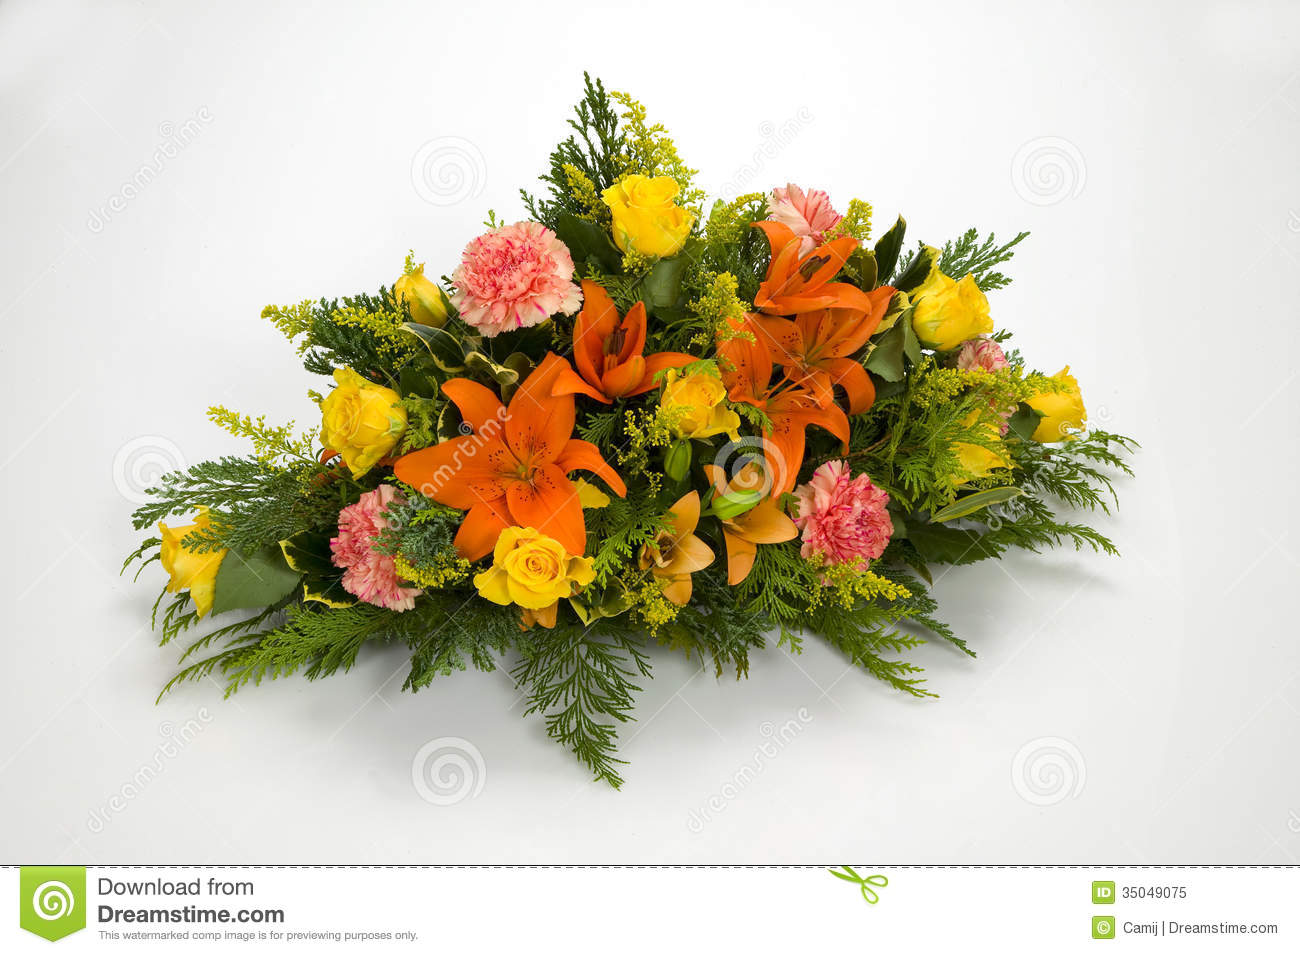 Bunches of flowers pictures free clip art royalty free Colorful Bouquet Of Flowers Royalty Free Stock Photo - Image: 35049075 clip art royalty free